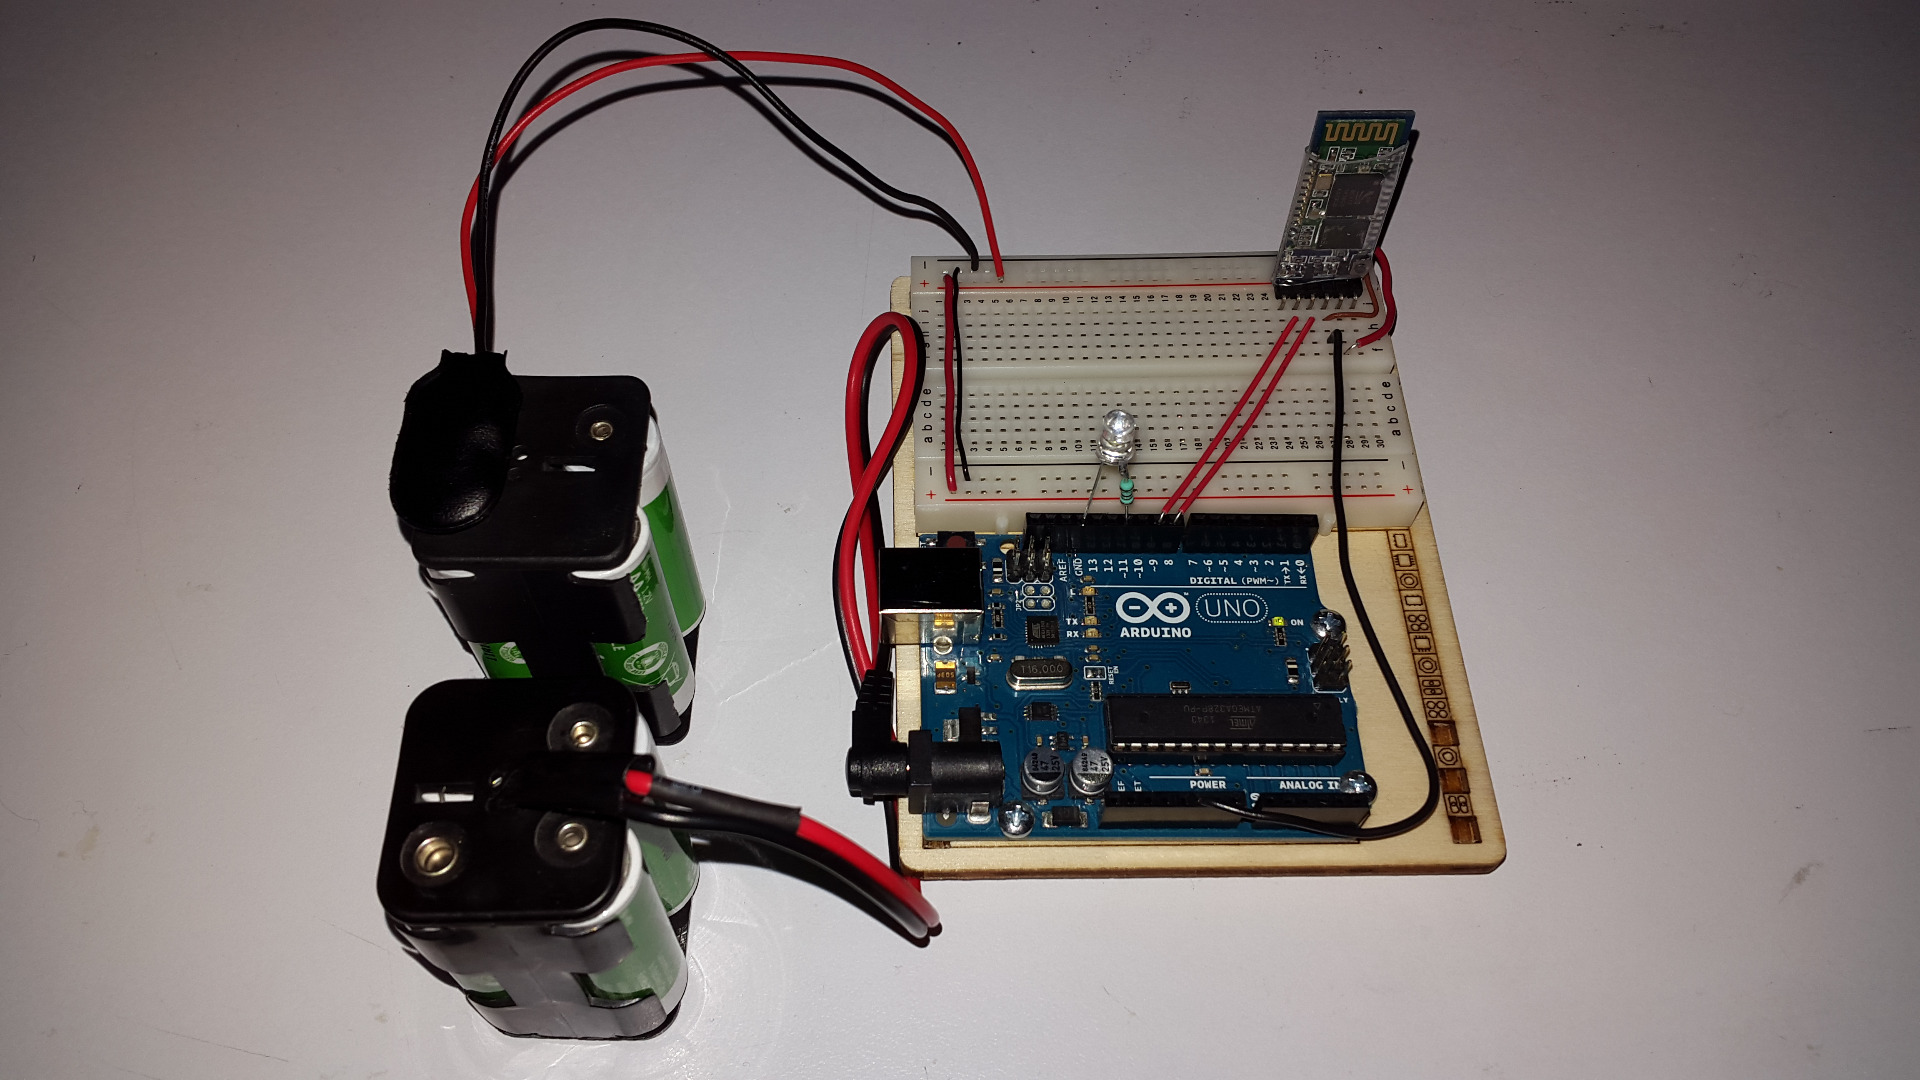 Picture of LED Intensity With Arduino and PC